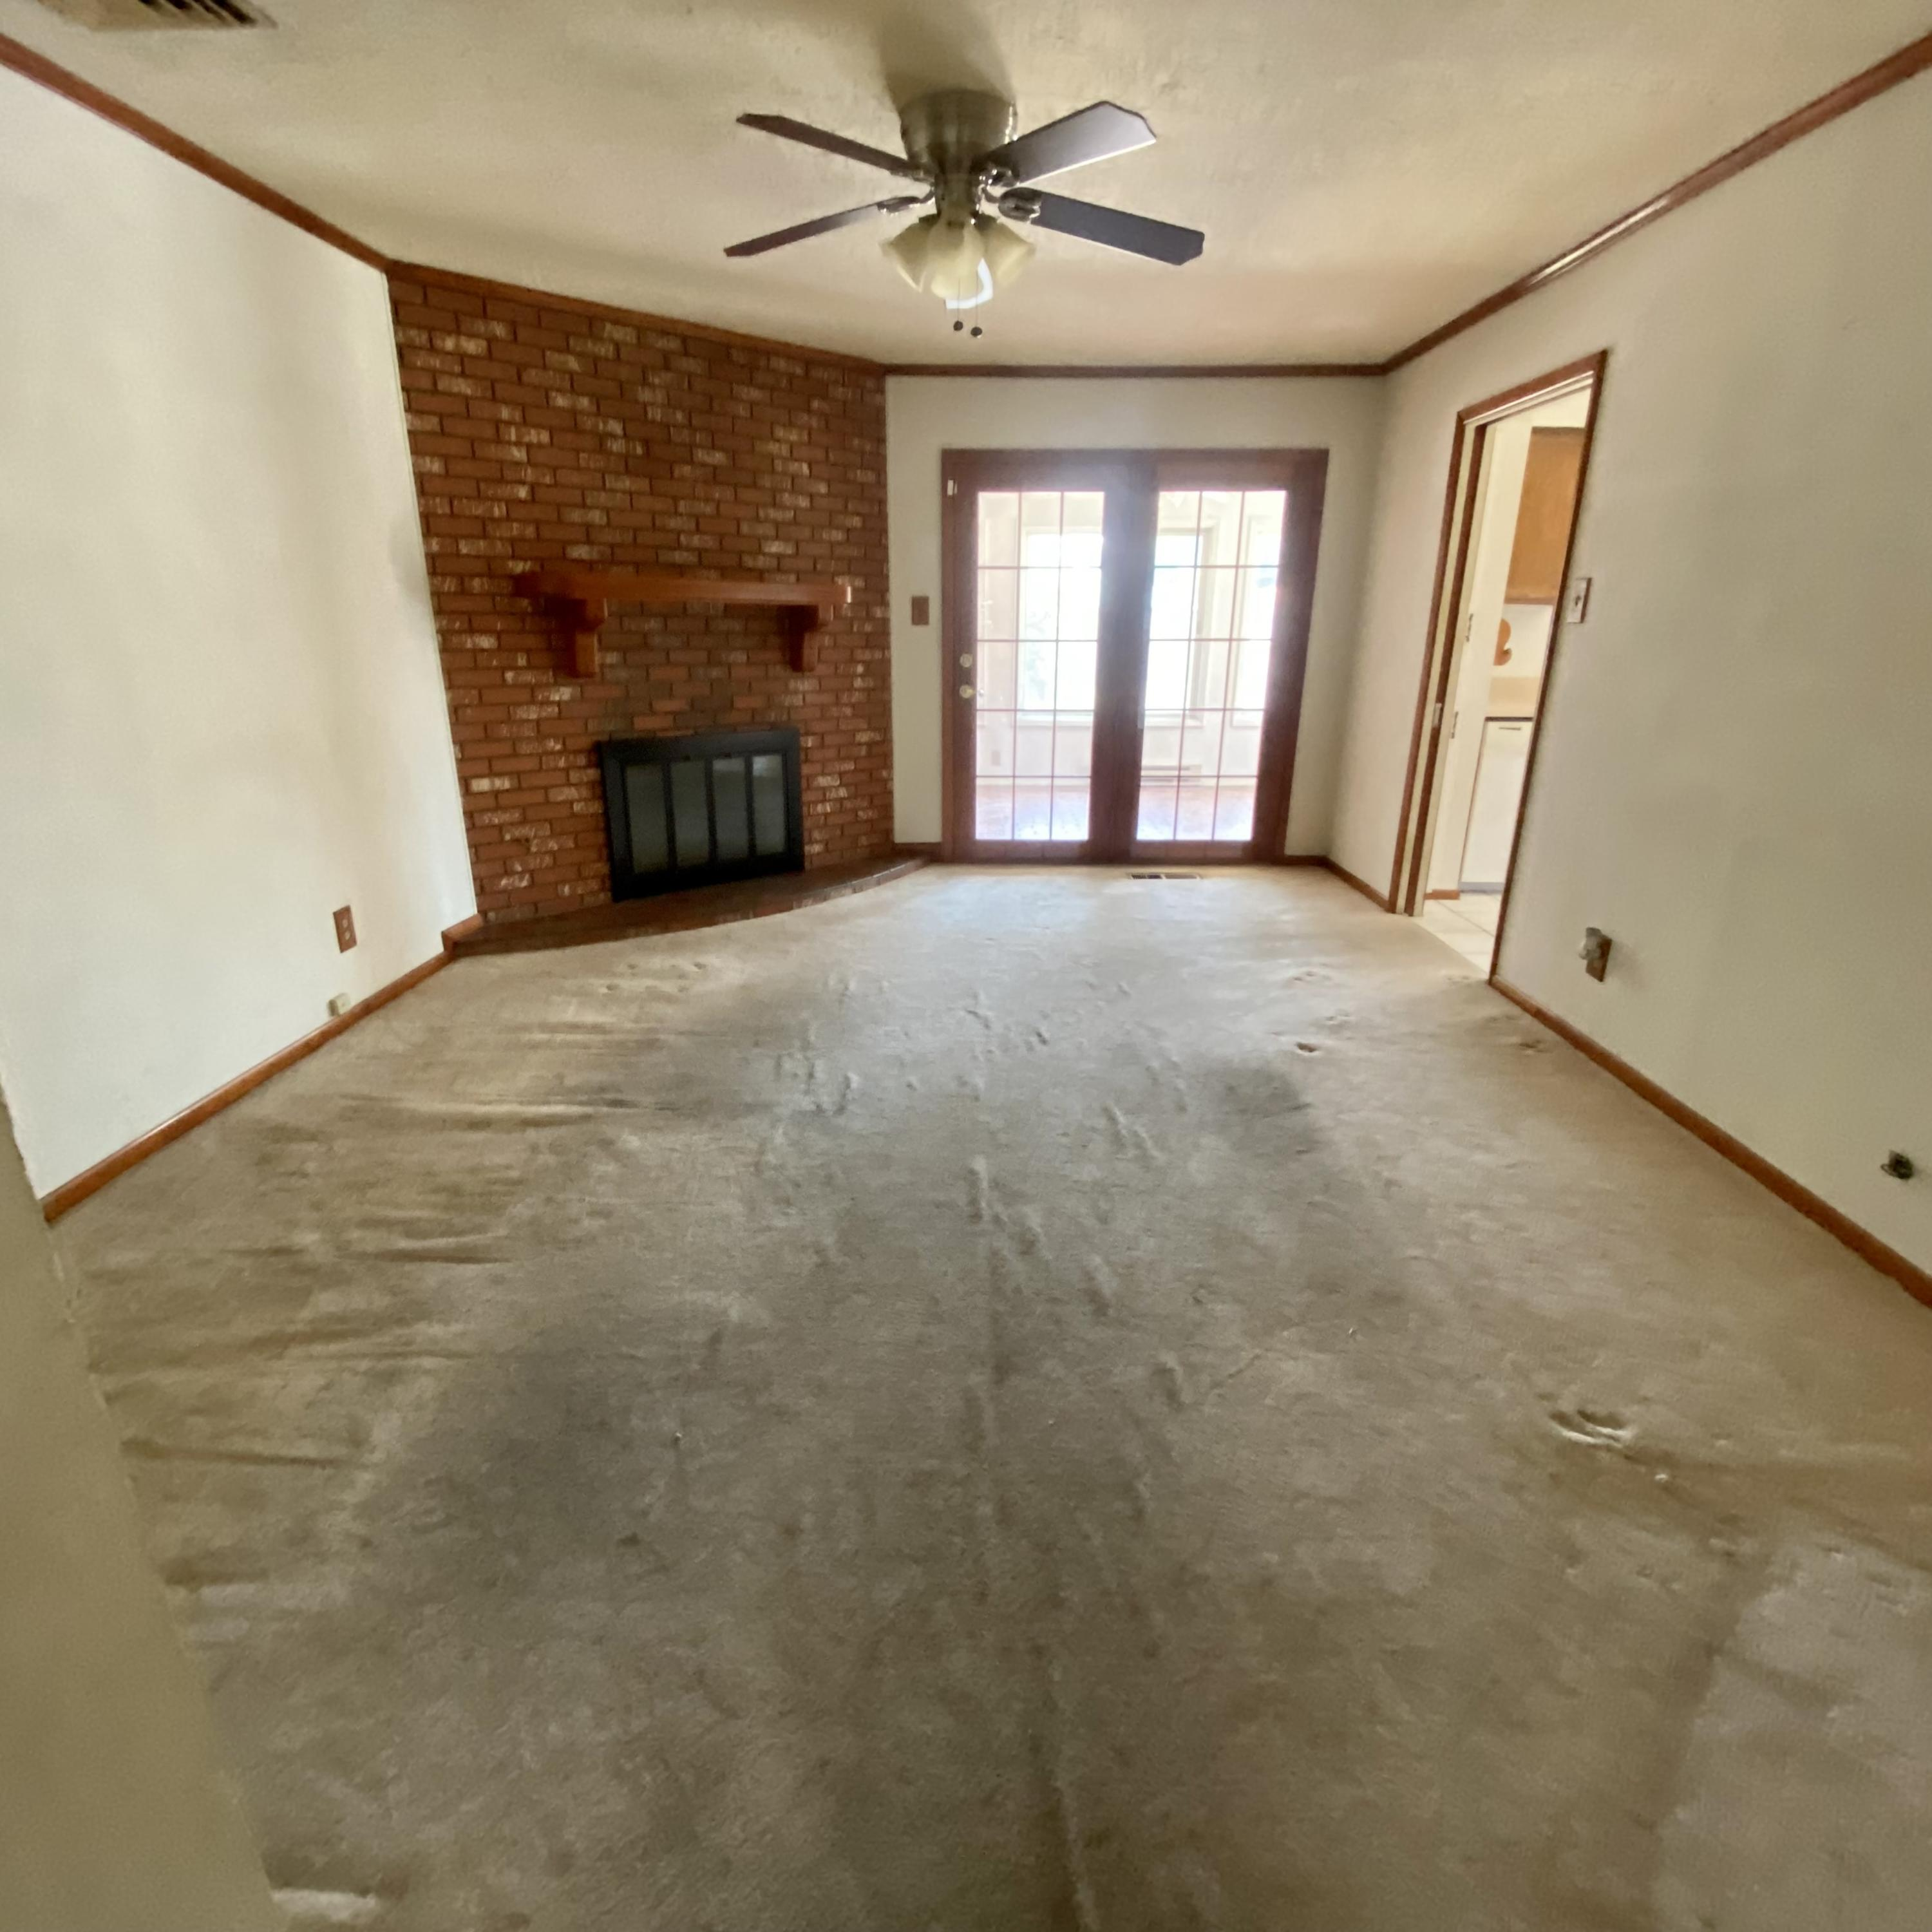 Home is sold AS-IS- Seller will not pay for any repairs or inspections. This property has good ''BONES'' 2019 Rheem AC Unit. Pitched, shingled roof is 2-3 years old. Brick home that is in need of TLC. No Adverse Material Paperwork available.Home is located just off of Wyoming, in the center of Albuquerque- This is an Estate home- Seller will look at All offers! Please allow 48 hours for response- due to Seller living out of town.